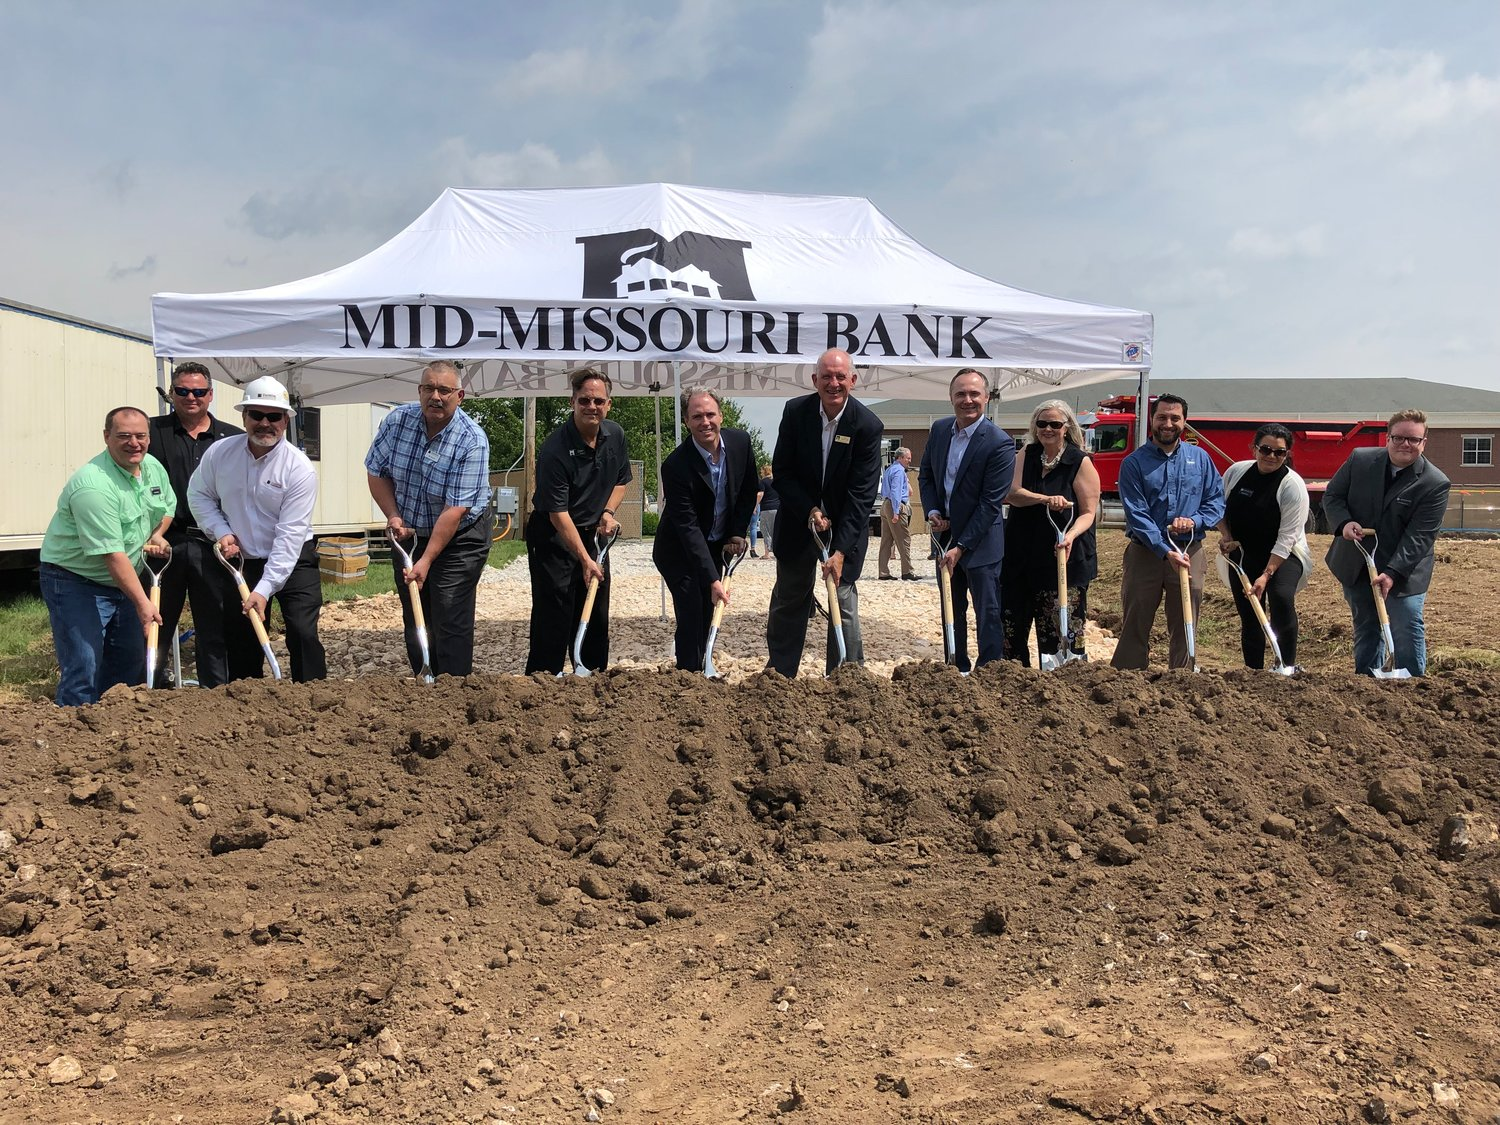 The start of construction is underway for Mid-Missouri Bank's new headquarters following this morning's groundbreaking ceremony.